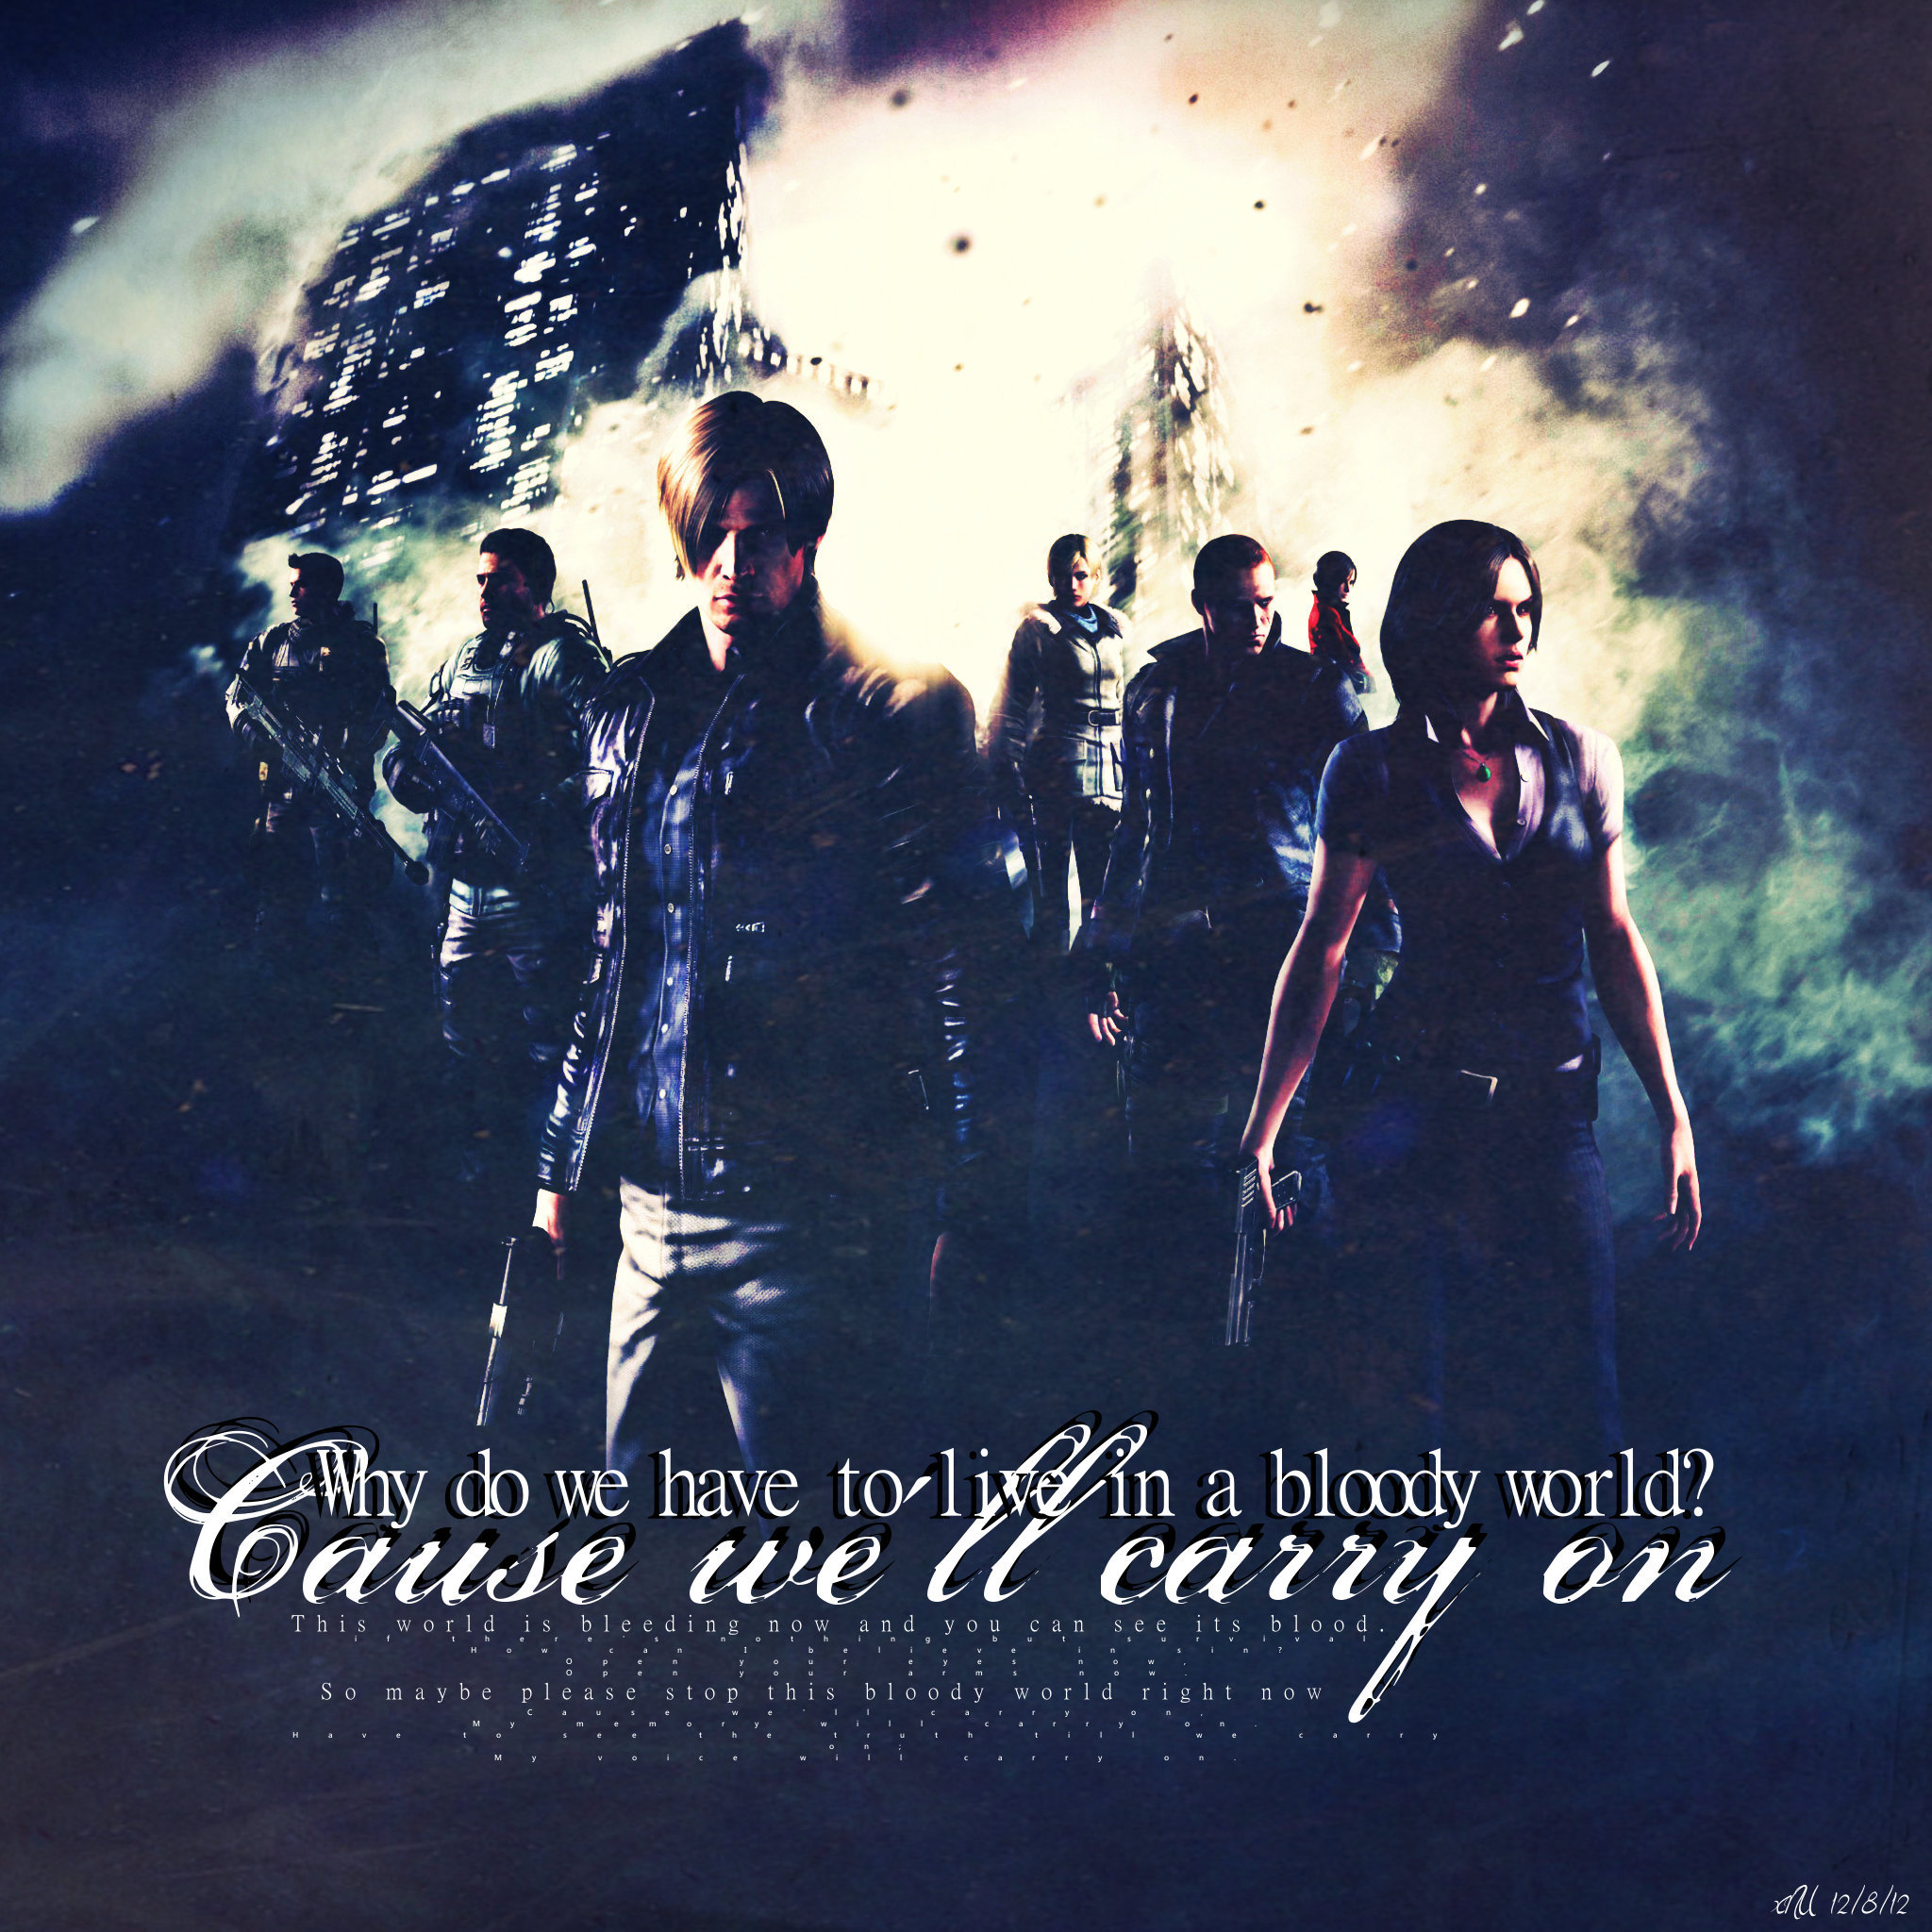 We will carry on